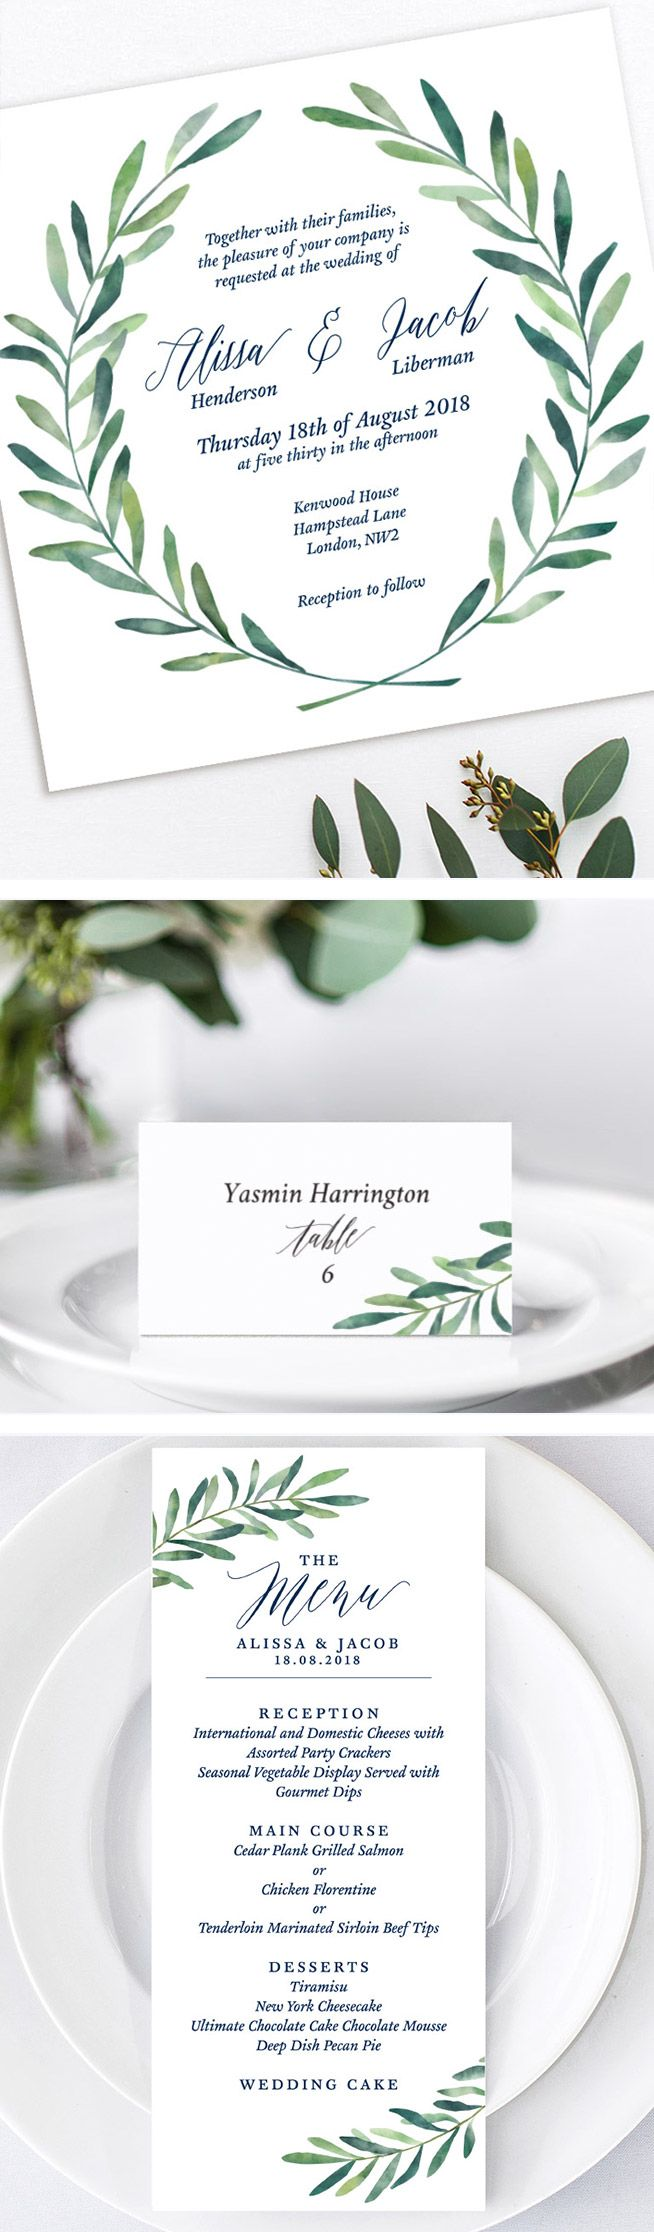 Customized Printable Wedding Invitation Template Boho Eucalyptus Wreath Set Diy Cards Watercolor Leaf Modern Calligraphy: Eucalytus Garland Wedding Place Card Templates At Websimilar.org